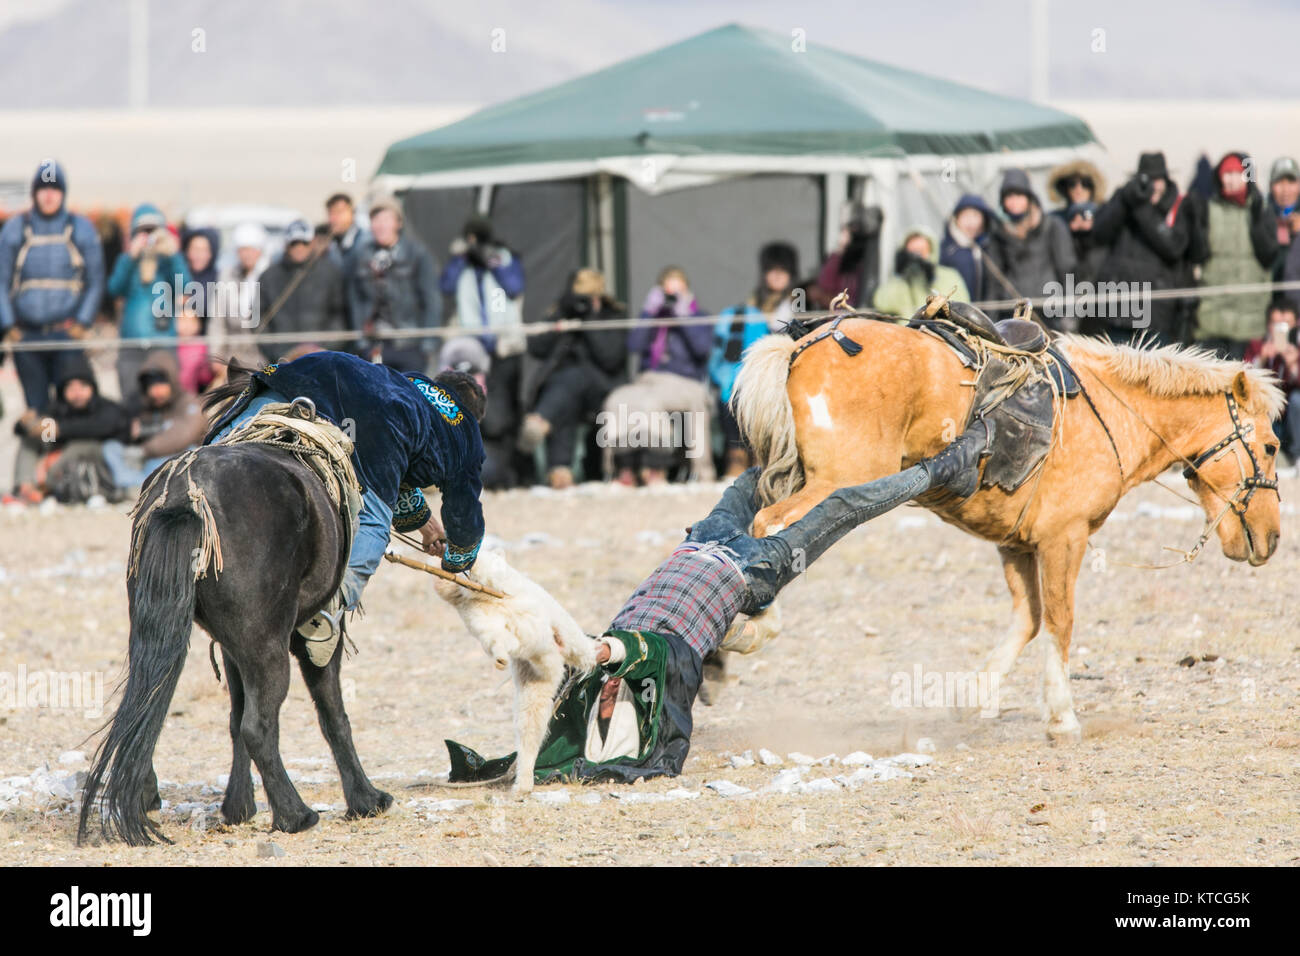 A round of Buzkashi (goat polo) at the Golden Eagle Festival in Mongolia - Stock Image